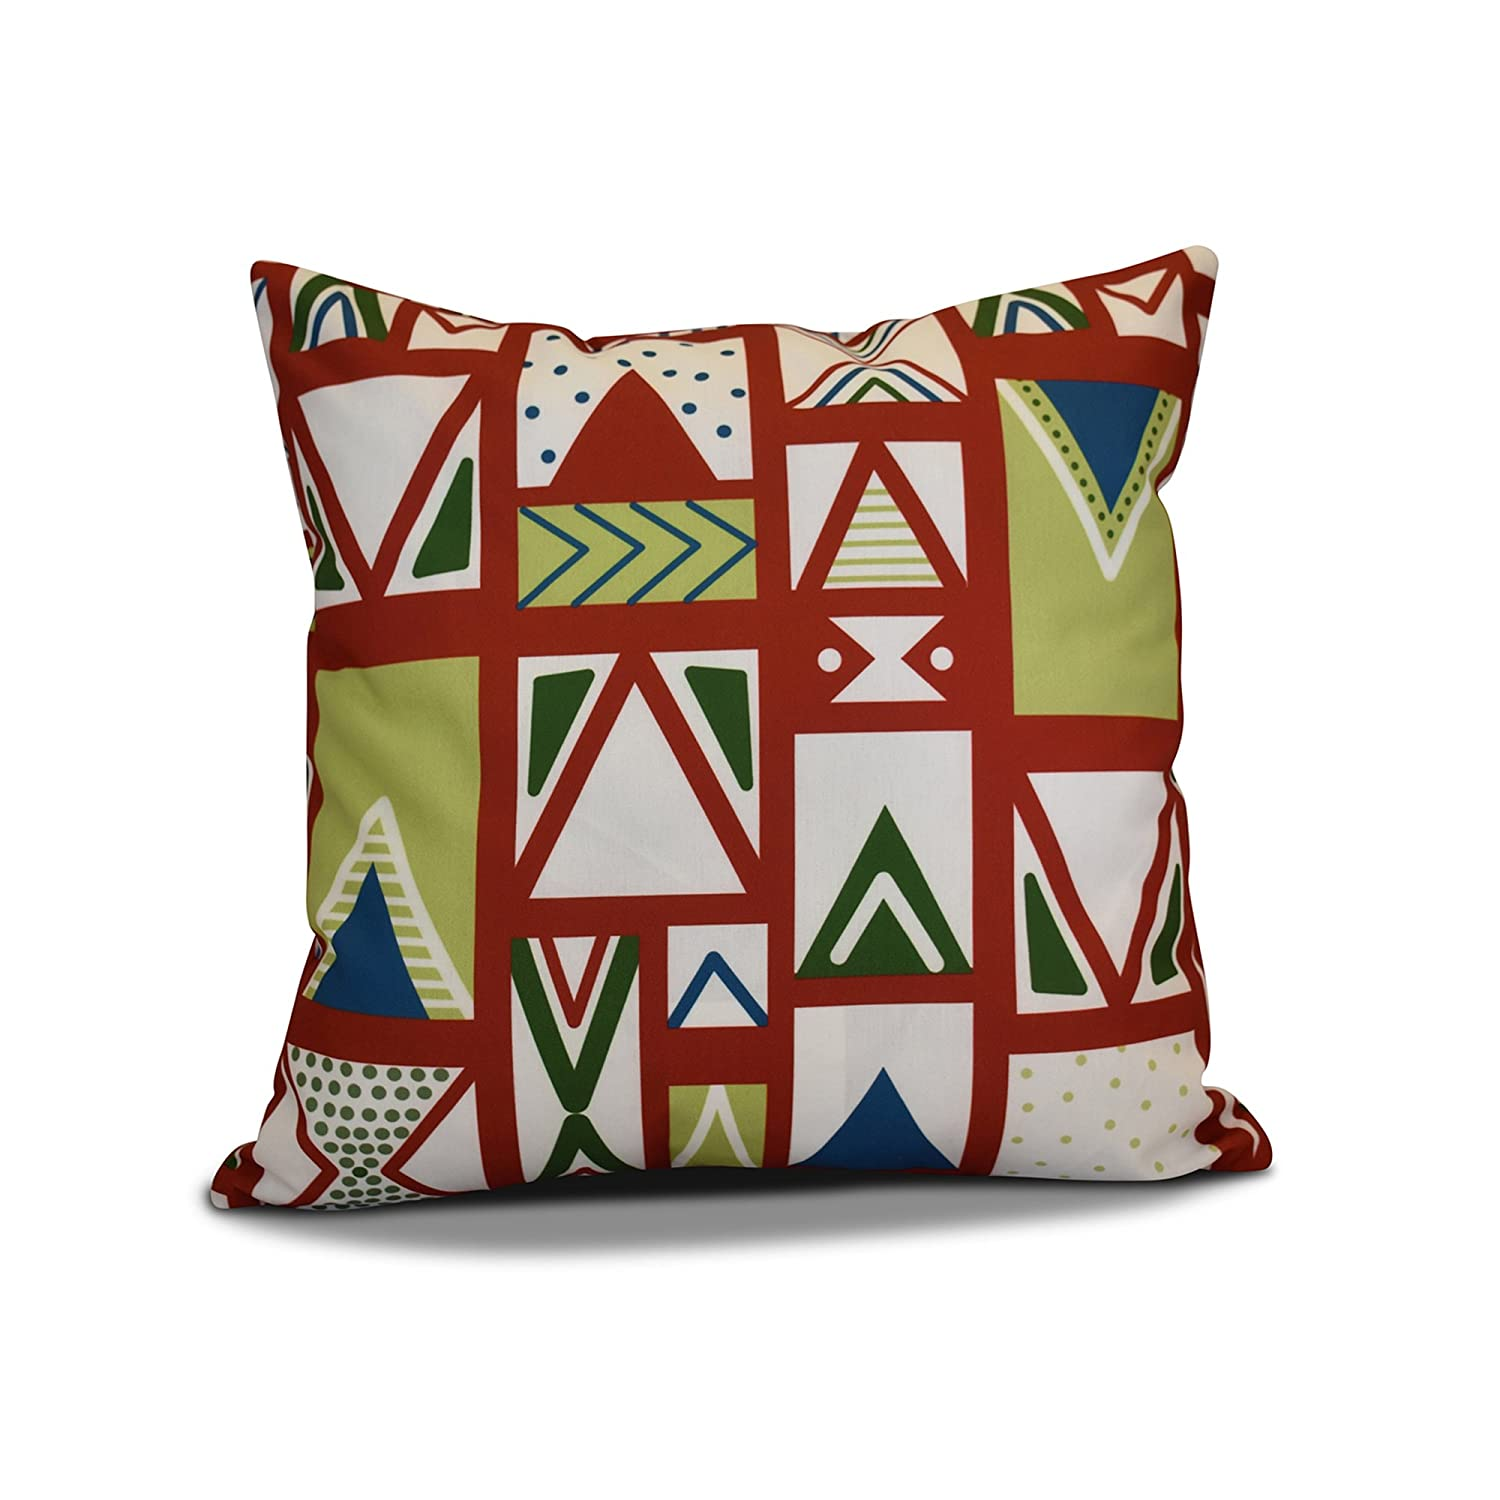 E by design PHGN707RE1-20 20 x 20-inch, Merry Susan Pillow, Red 20x20,